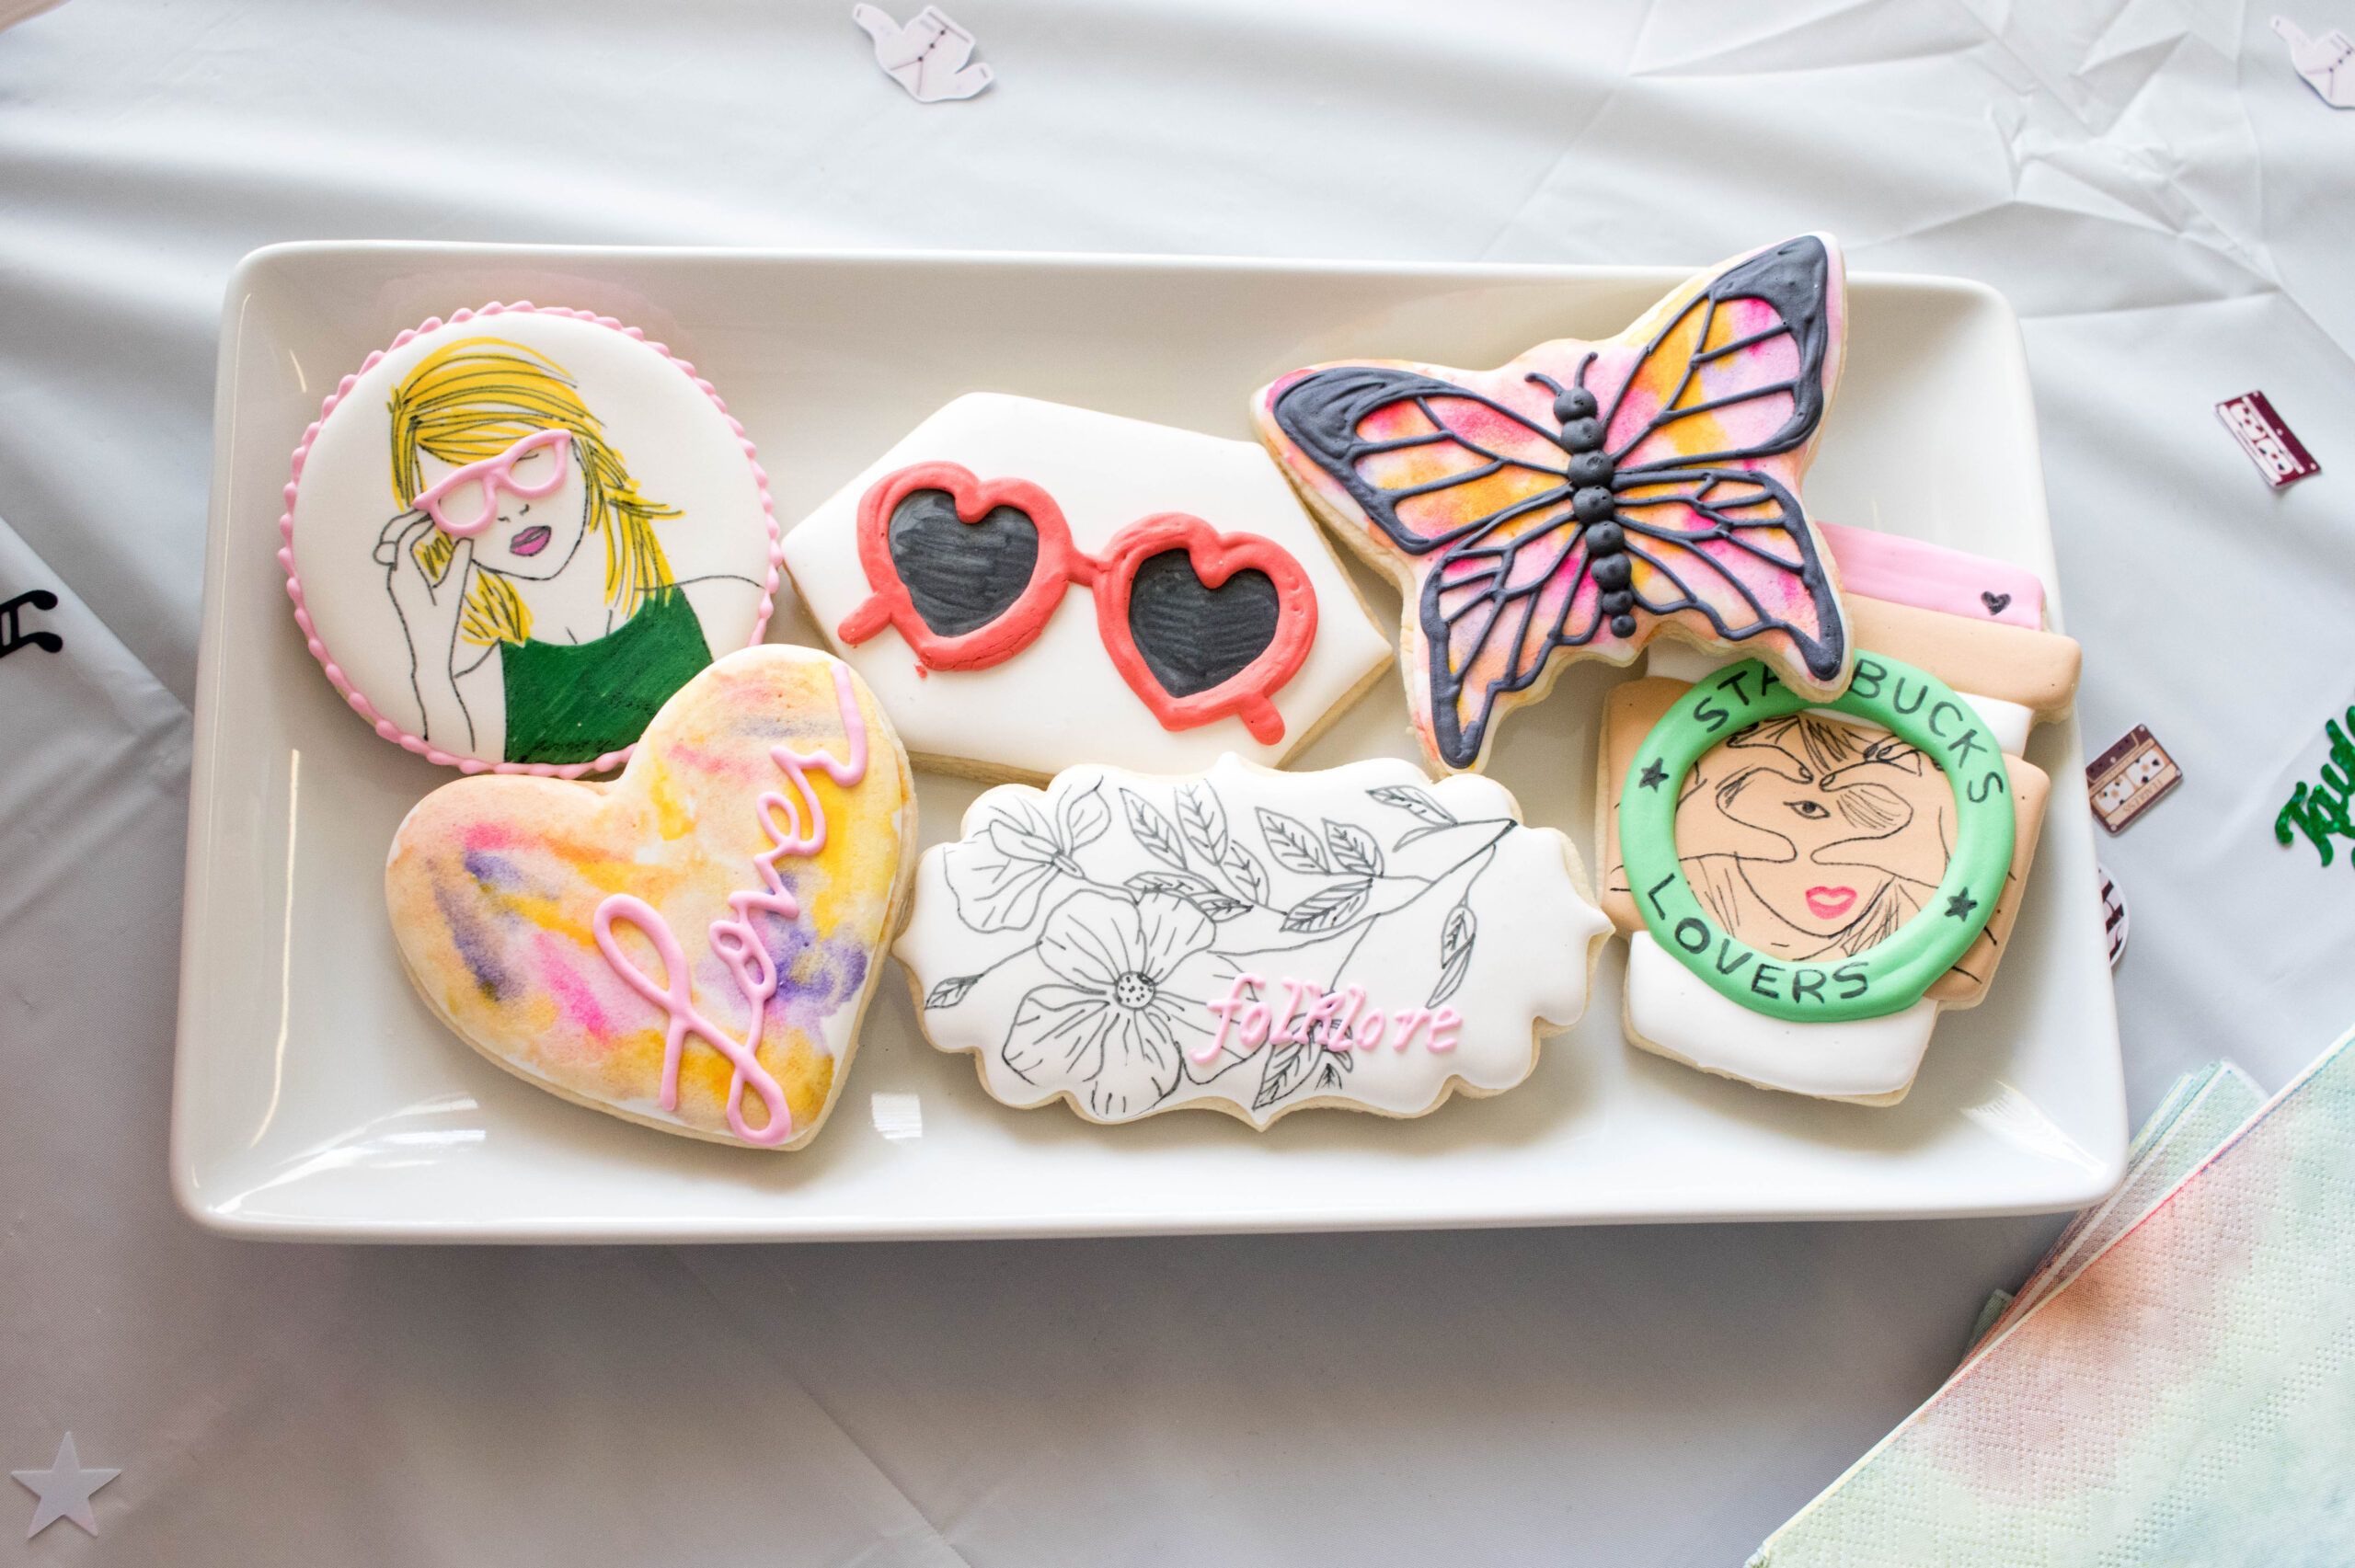 Taylor swift themed cookies birthday party #taylorswiftcookies #taylorswiftfan #swiftie